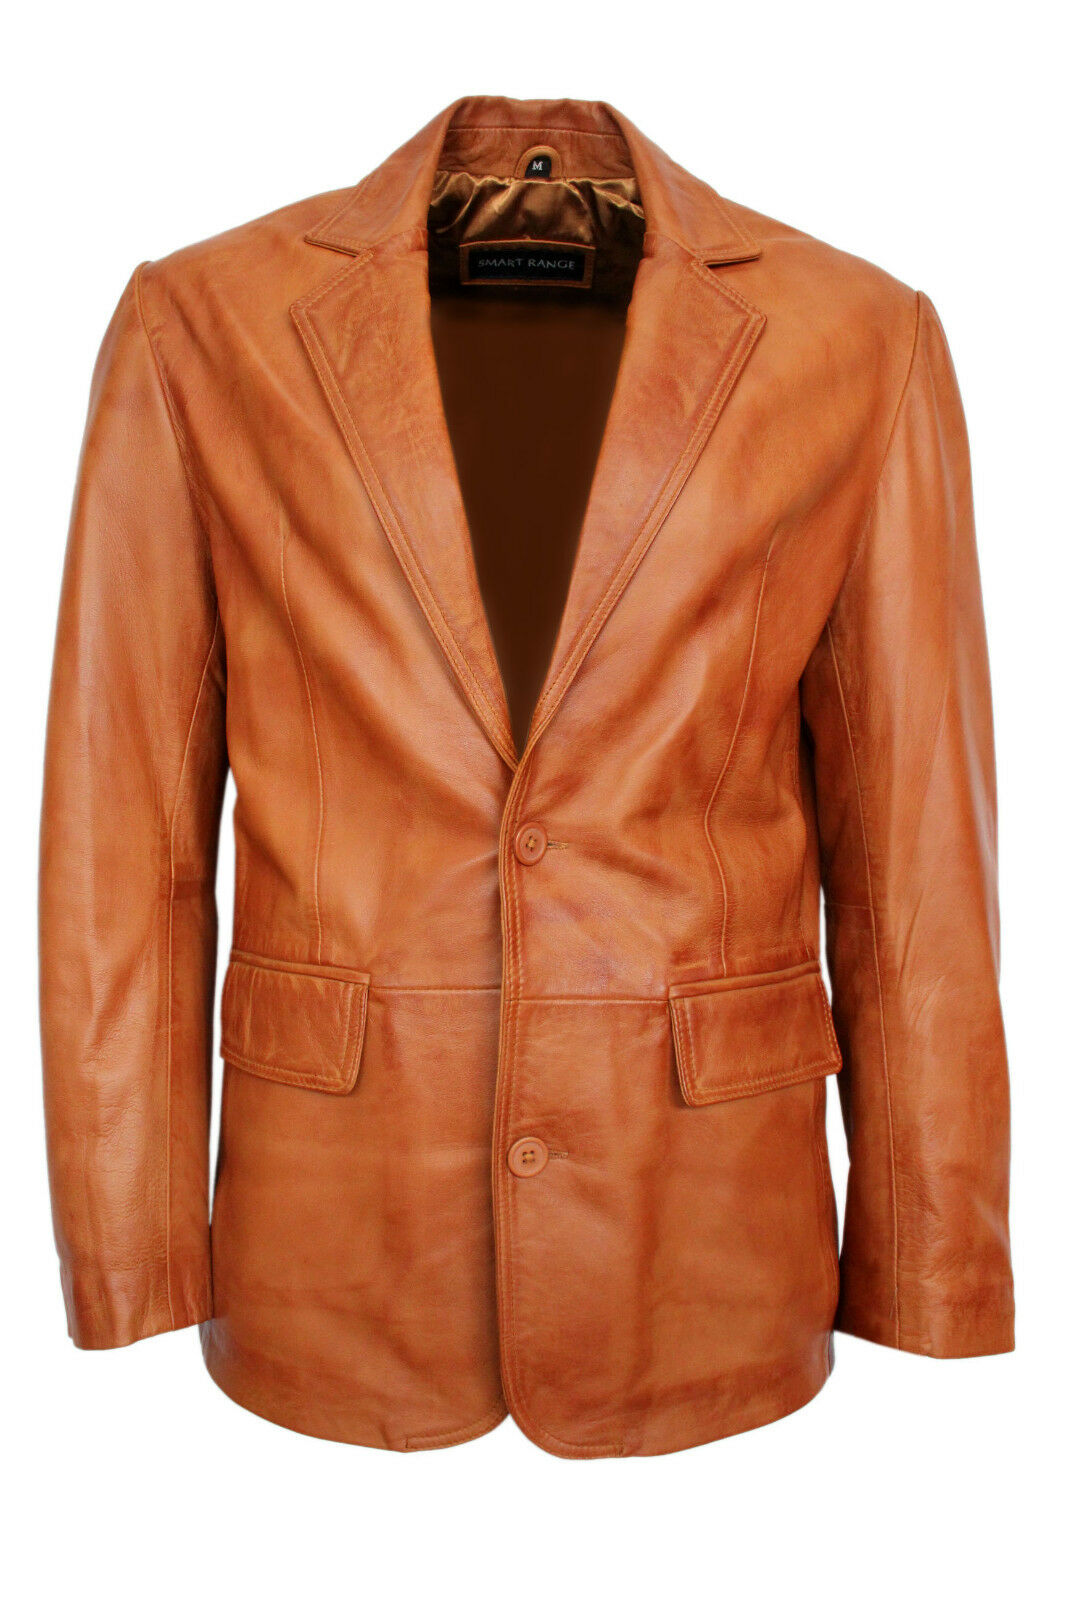 New 2BB Tailored Fit Smart Look Style 2 Button Blazer Coat Tan Nappa Leather